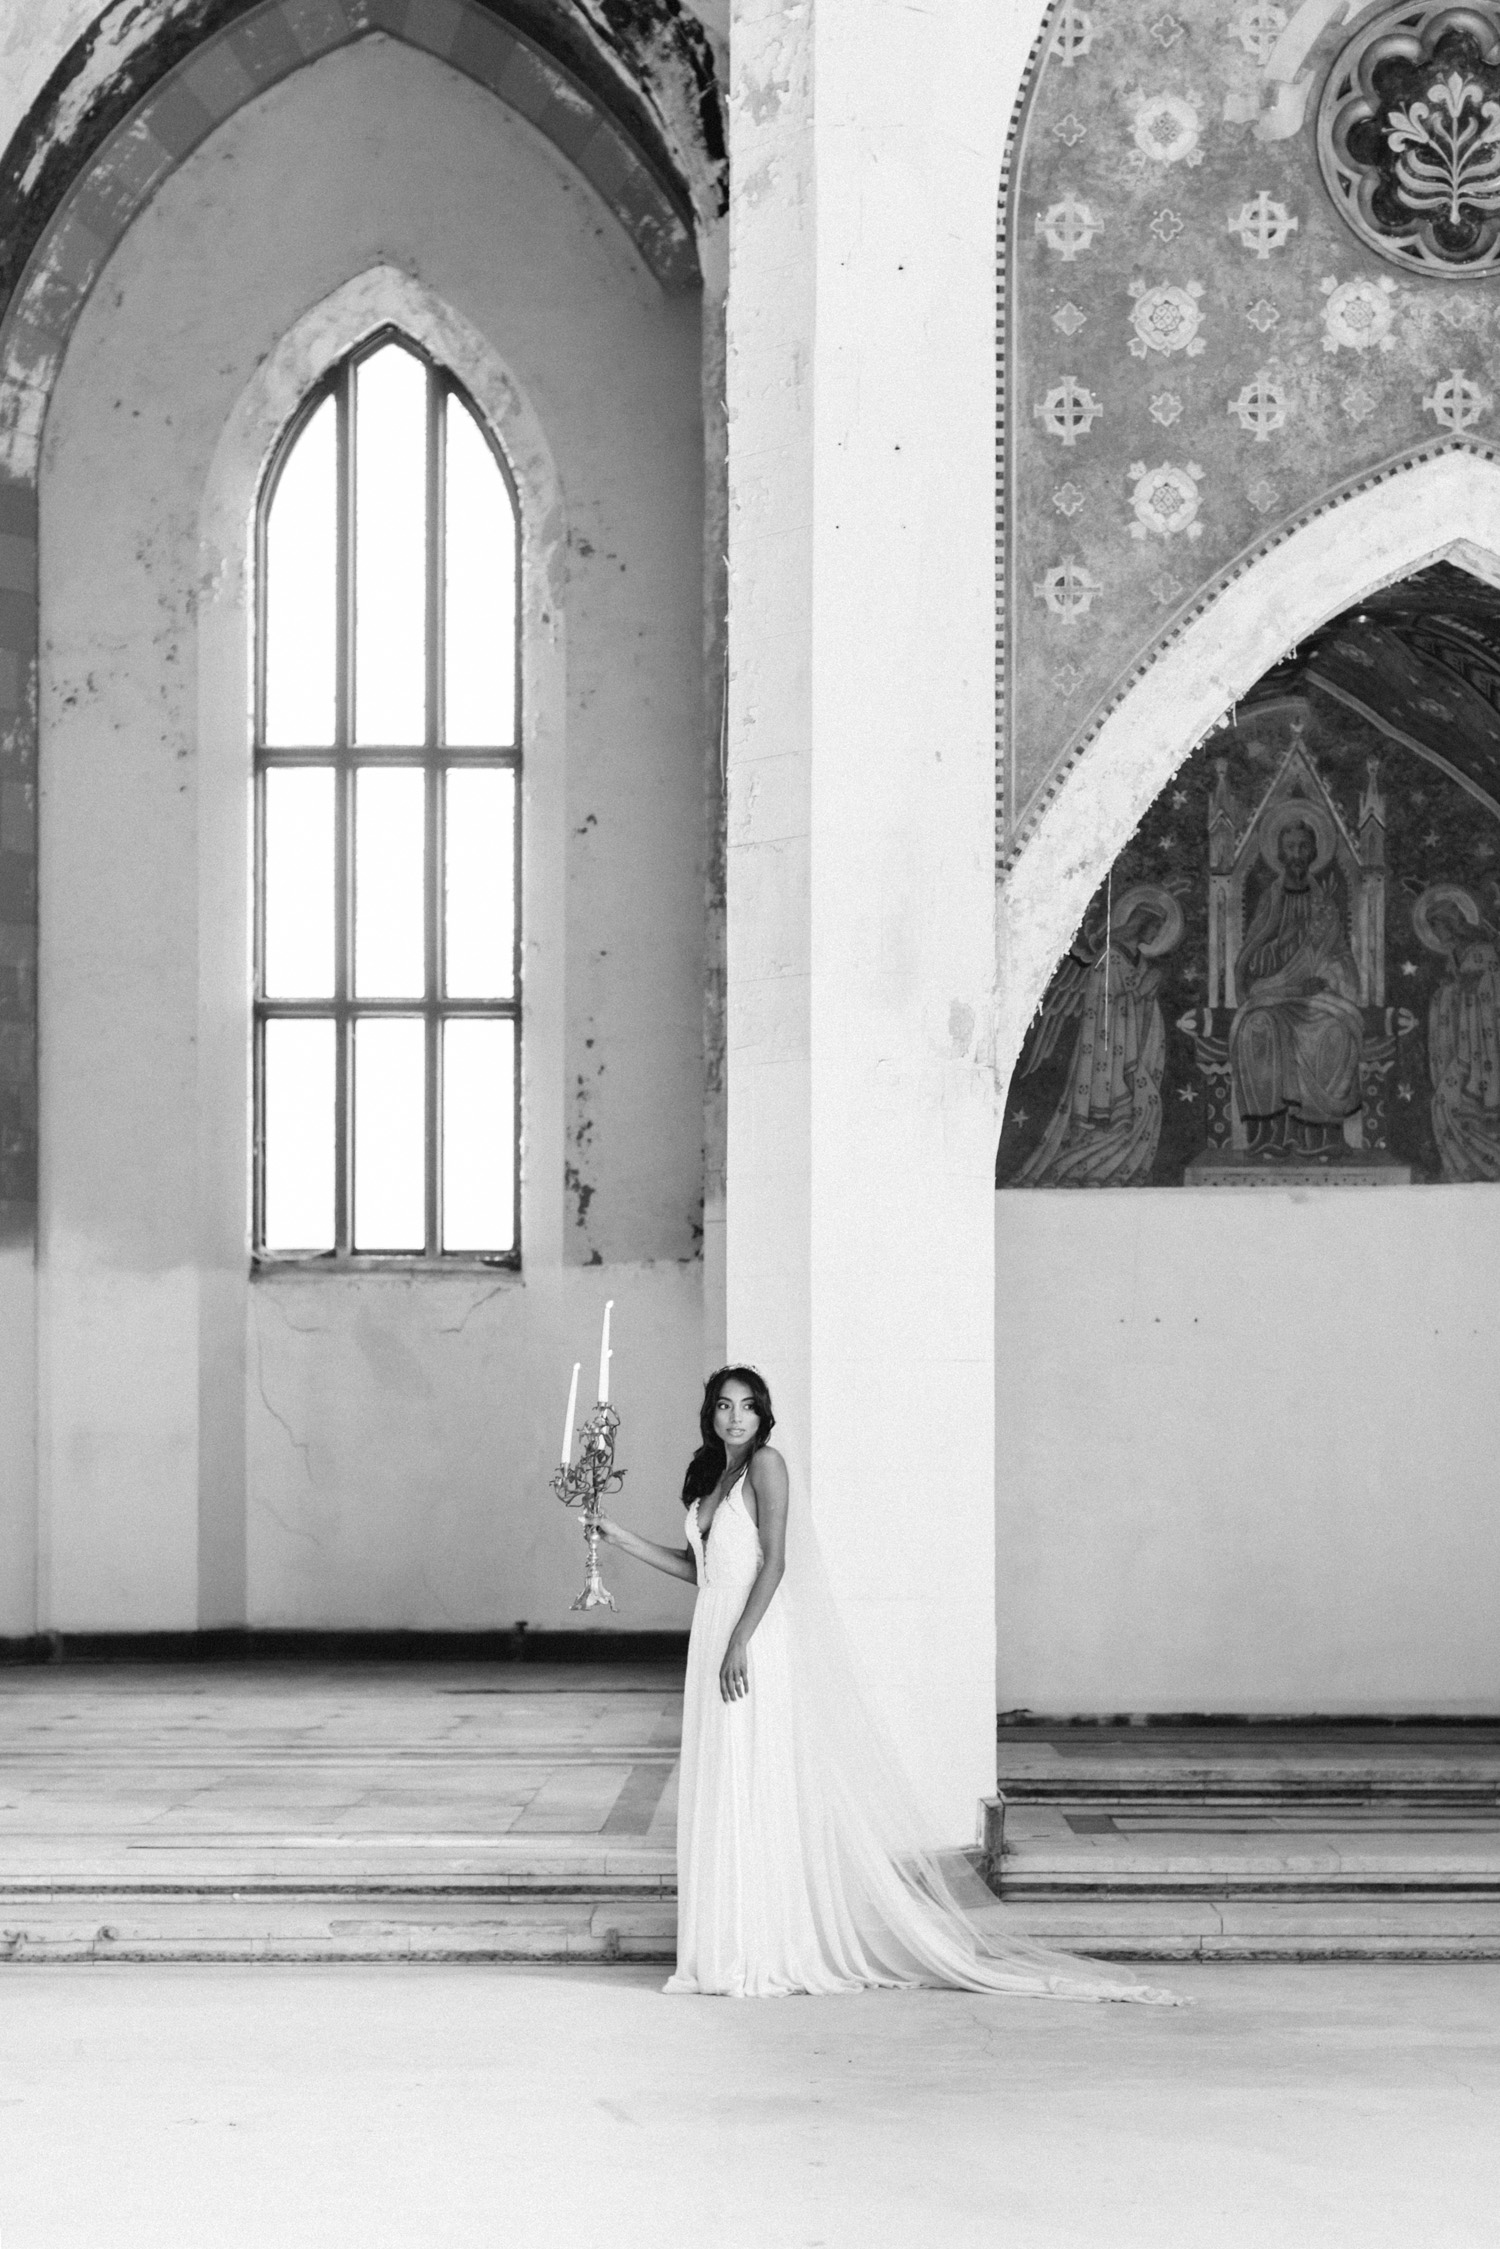 An Indian bride holds an ornate candelabra while exploring an abandoned cathedral in Michigan